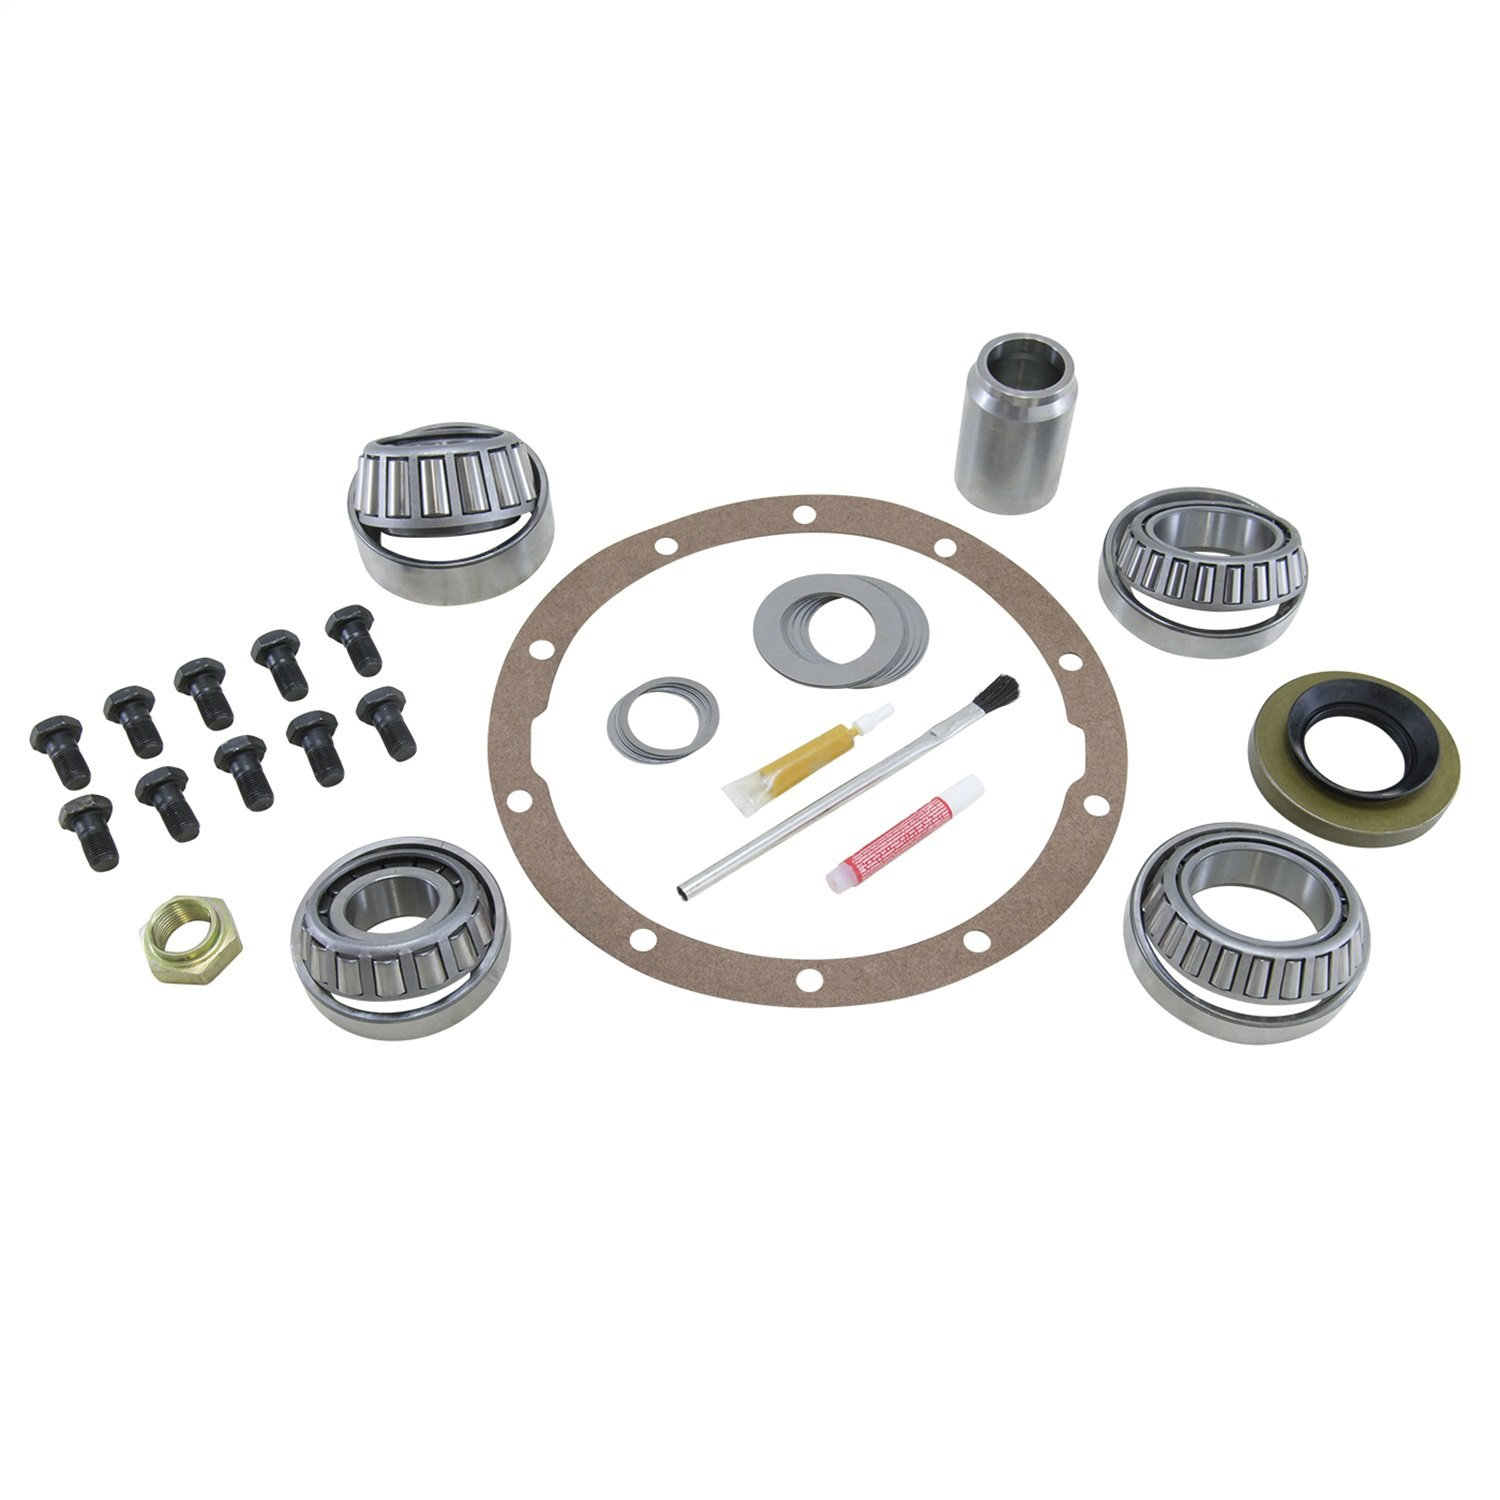 USA Standard Gear (ZK T8-A-SPC) Master Overhaul Kit for Toyota 8 Differential by USA Standard Gear